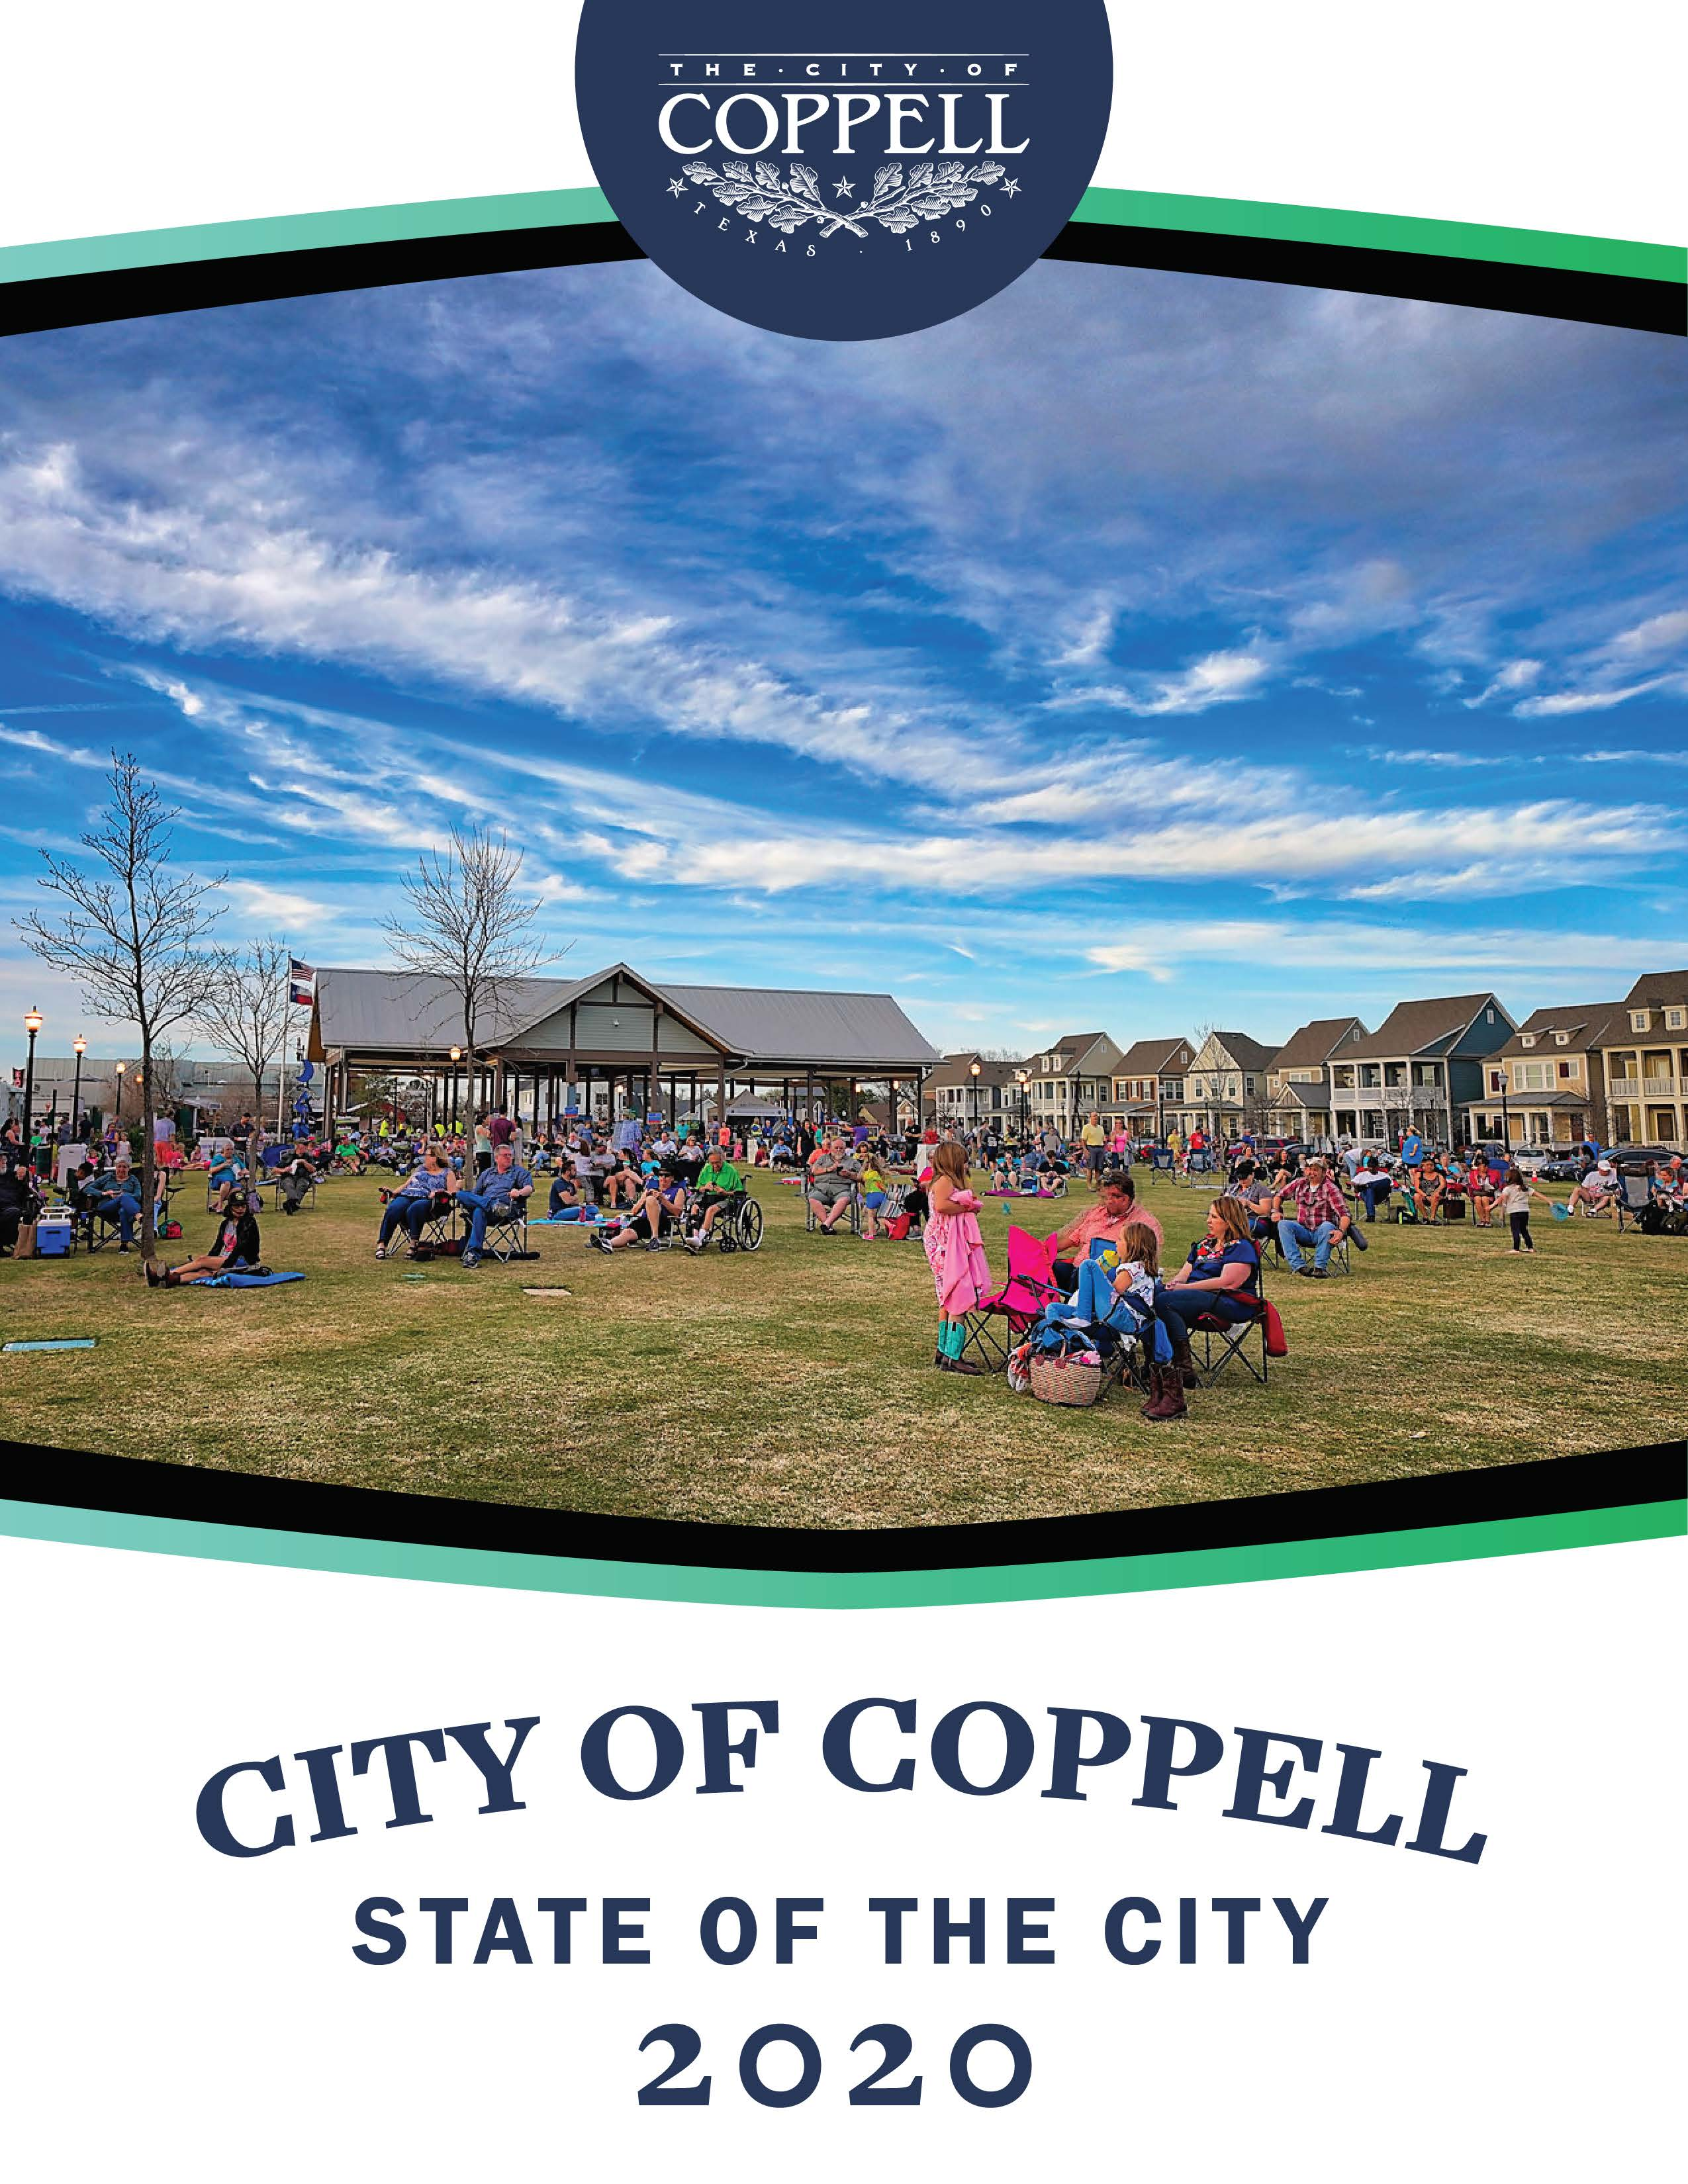 'State of the City 2020' overlaid on image of Old Town Coppell with people sitting on lawn